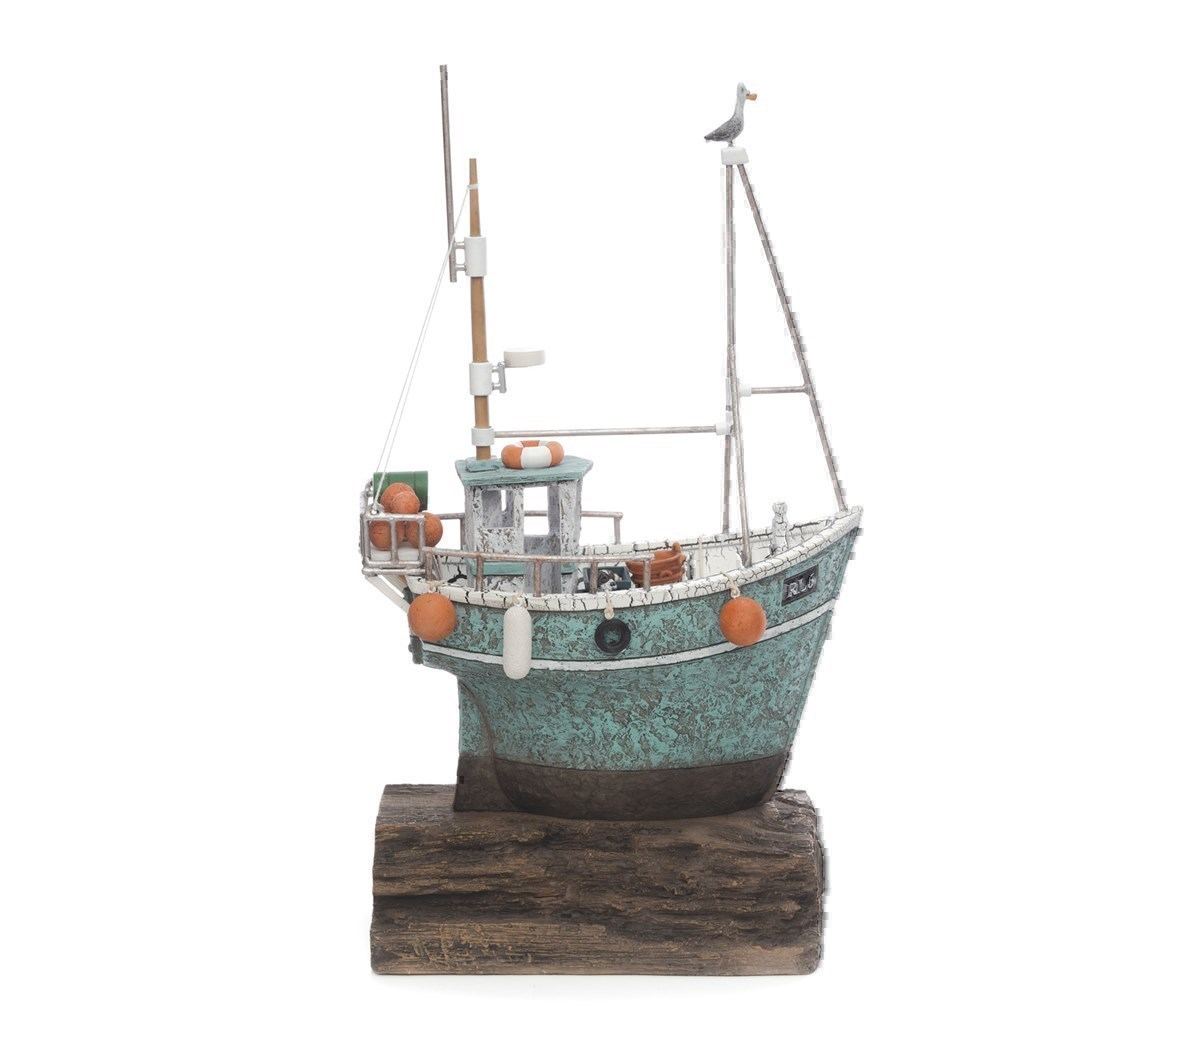 Gone Fishing by Rebecca Lardner - Cold Cast Porcelain sized 16x8 inches. Available from Whitewall Galleries